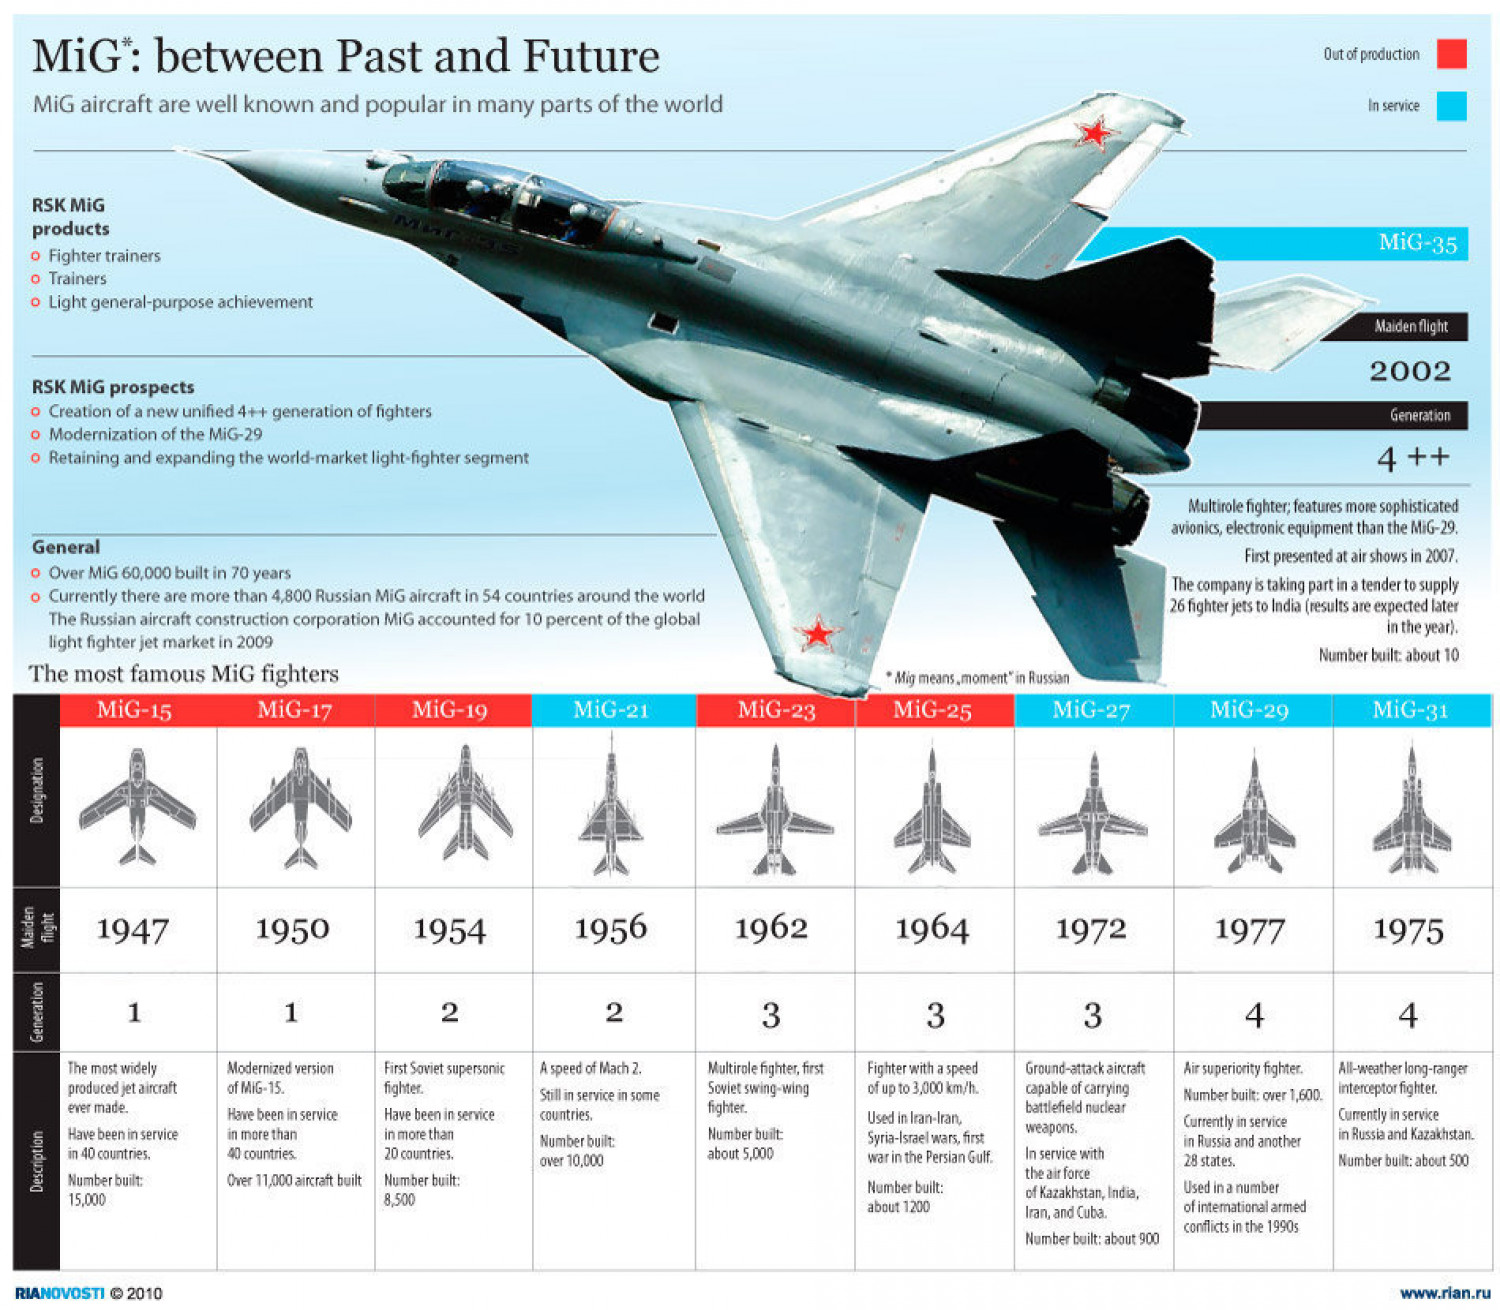 MiG: Between Past and Future  Infographic